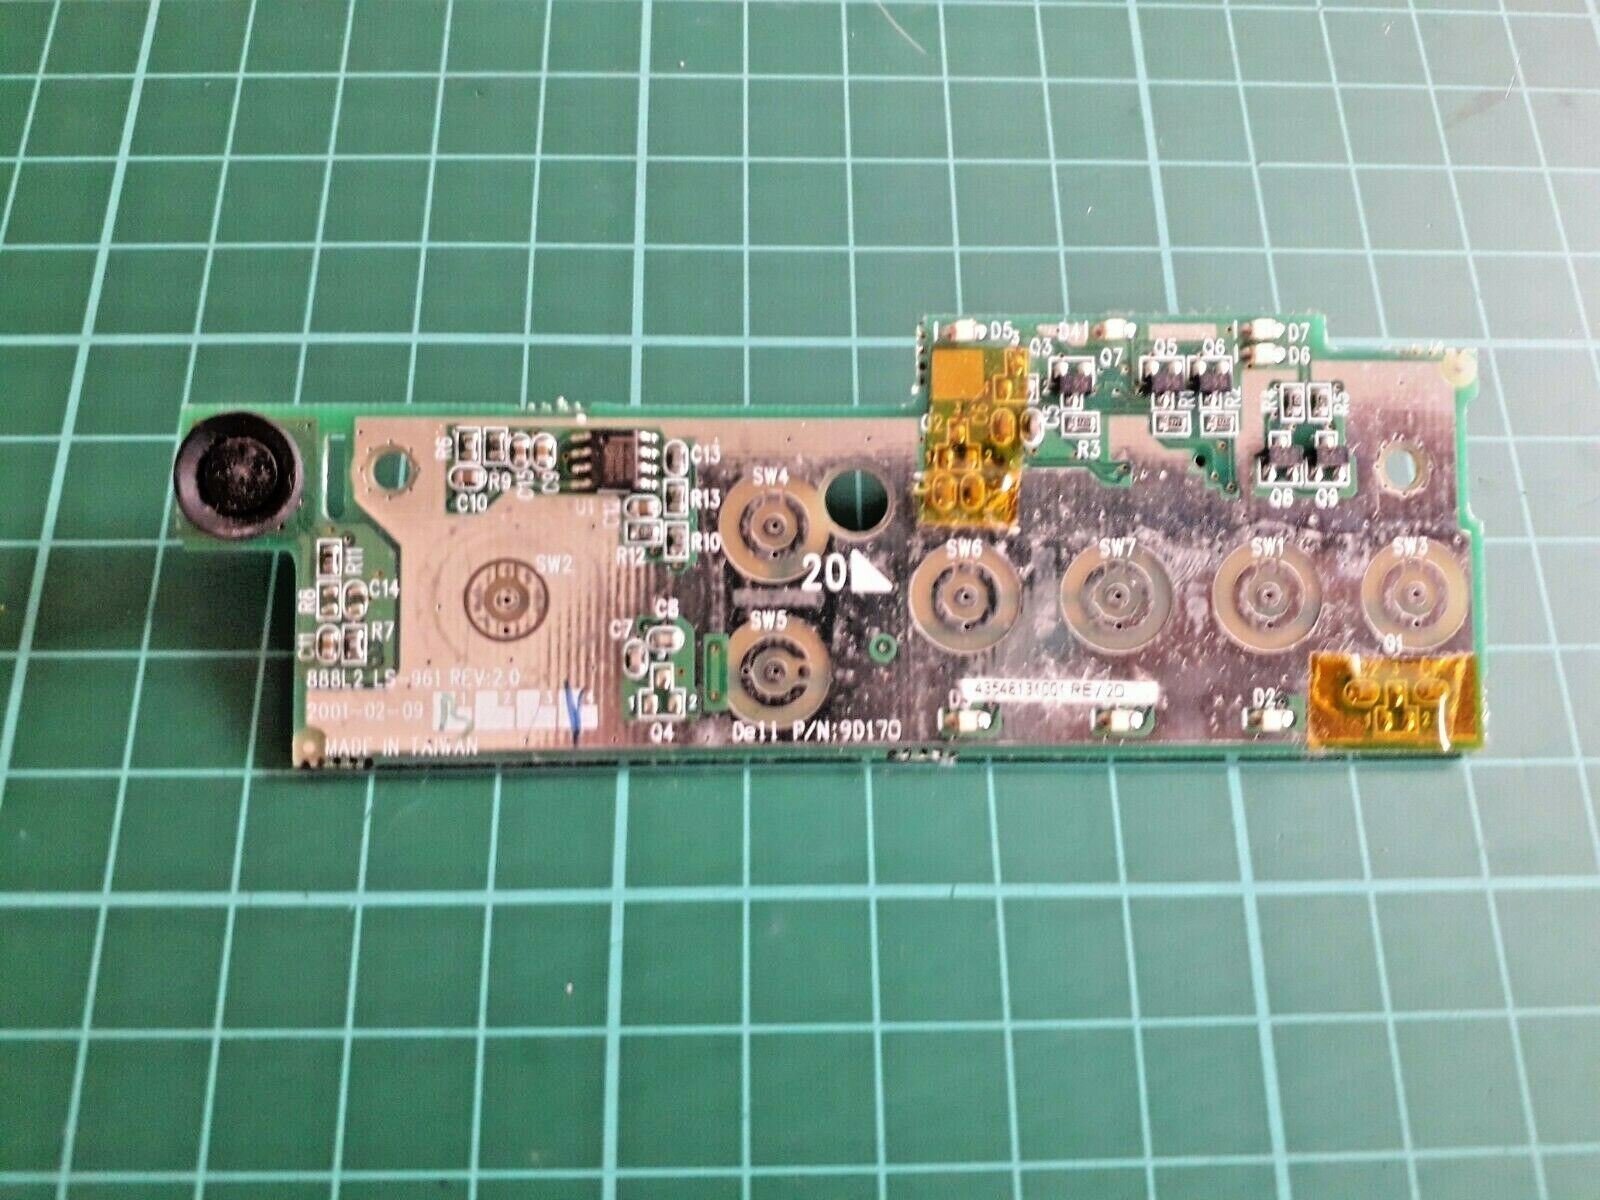 Dell Inspiron 2500 - Media - LEDs - Power Buttons Board - 9D170 - 45546131001